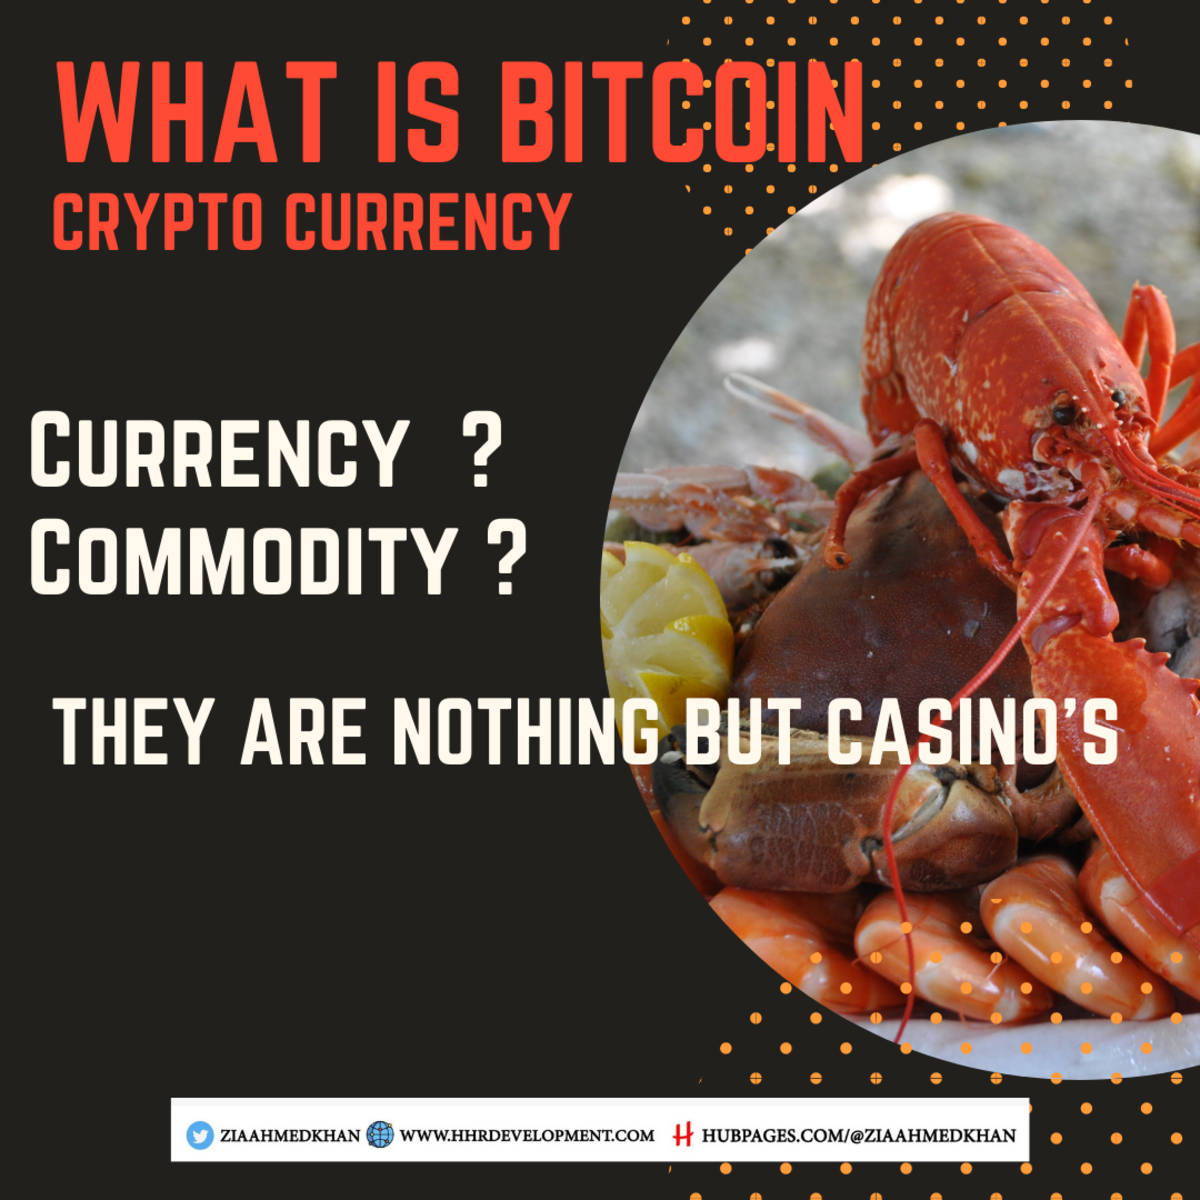 Bitcoin and Crypto Currency not Halal